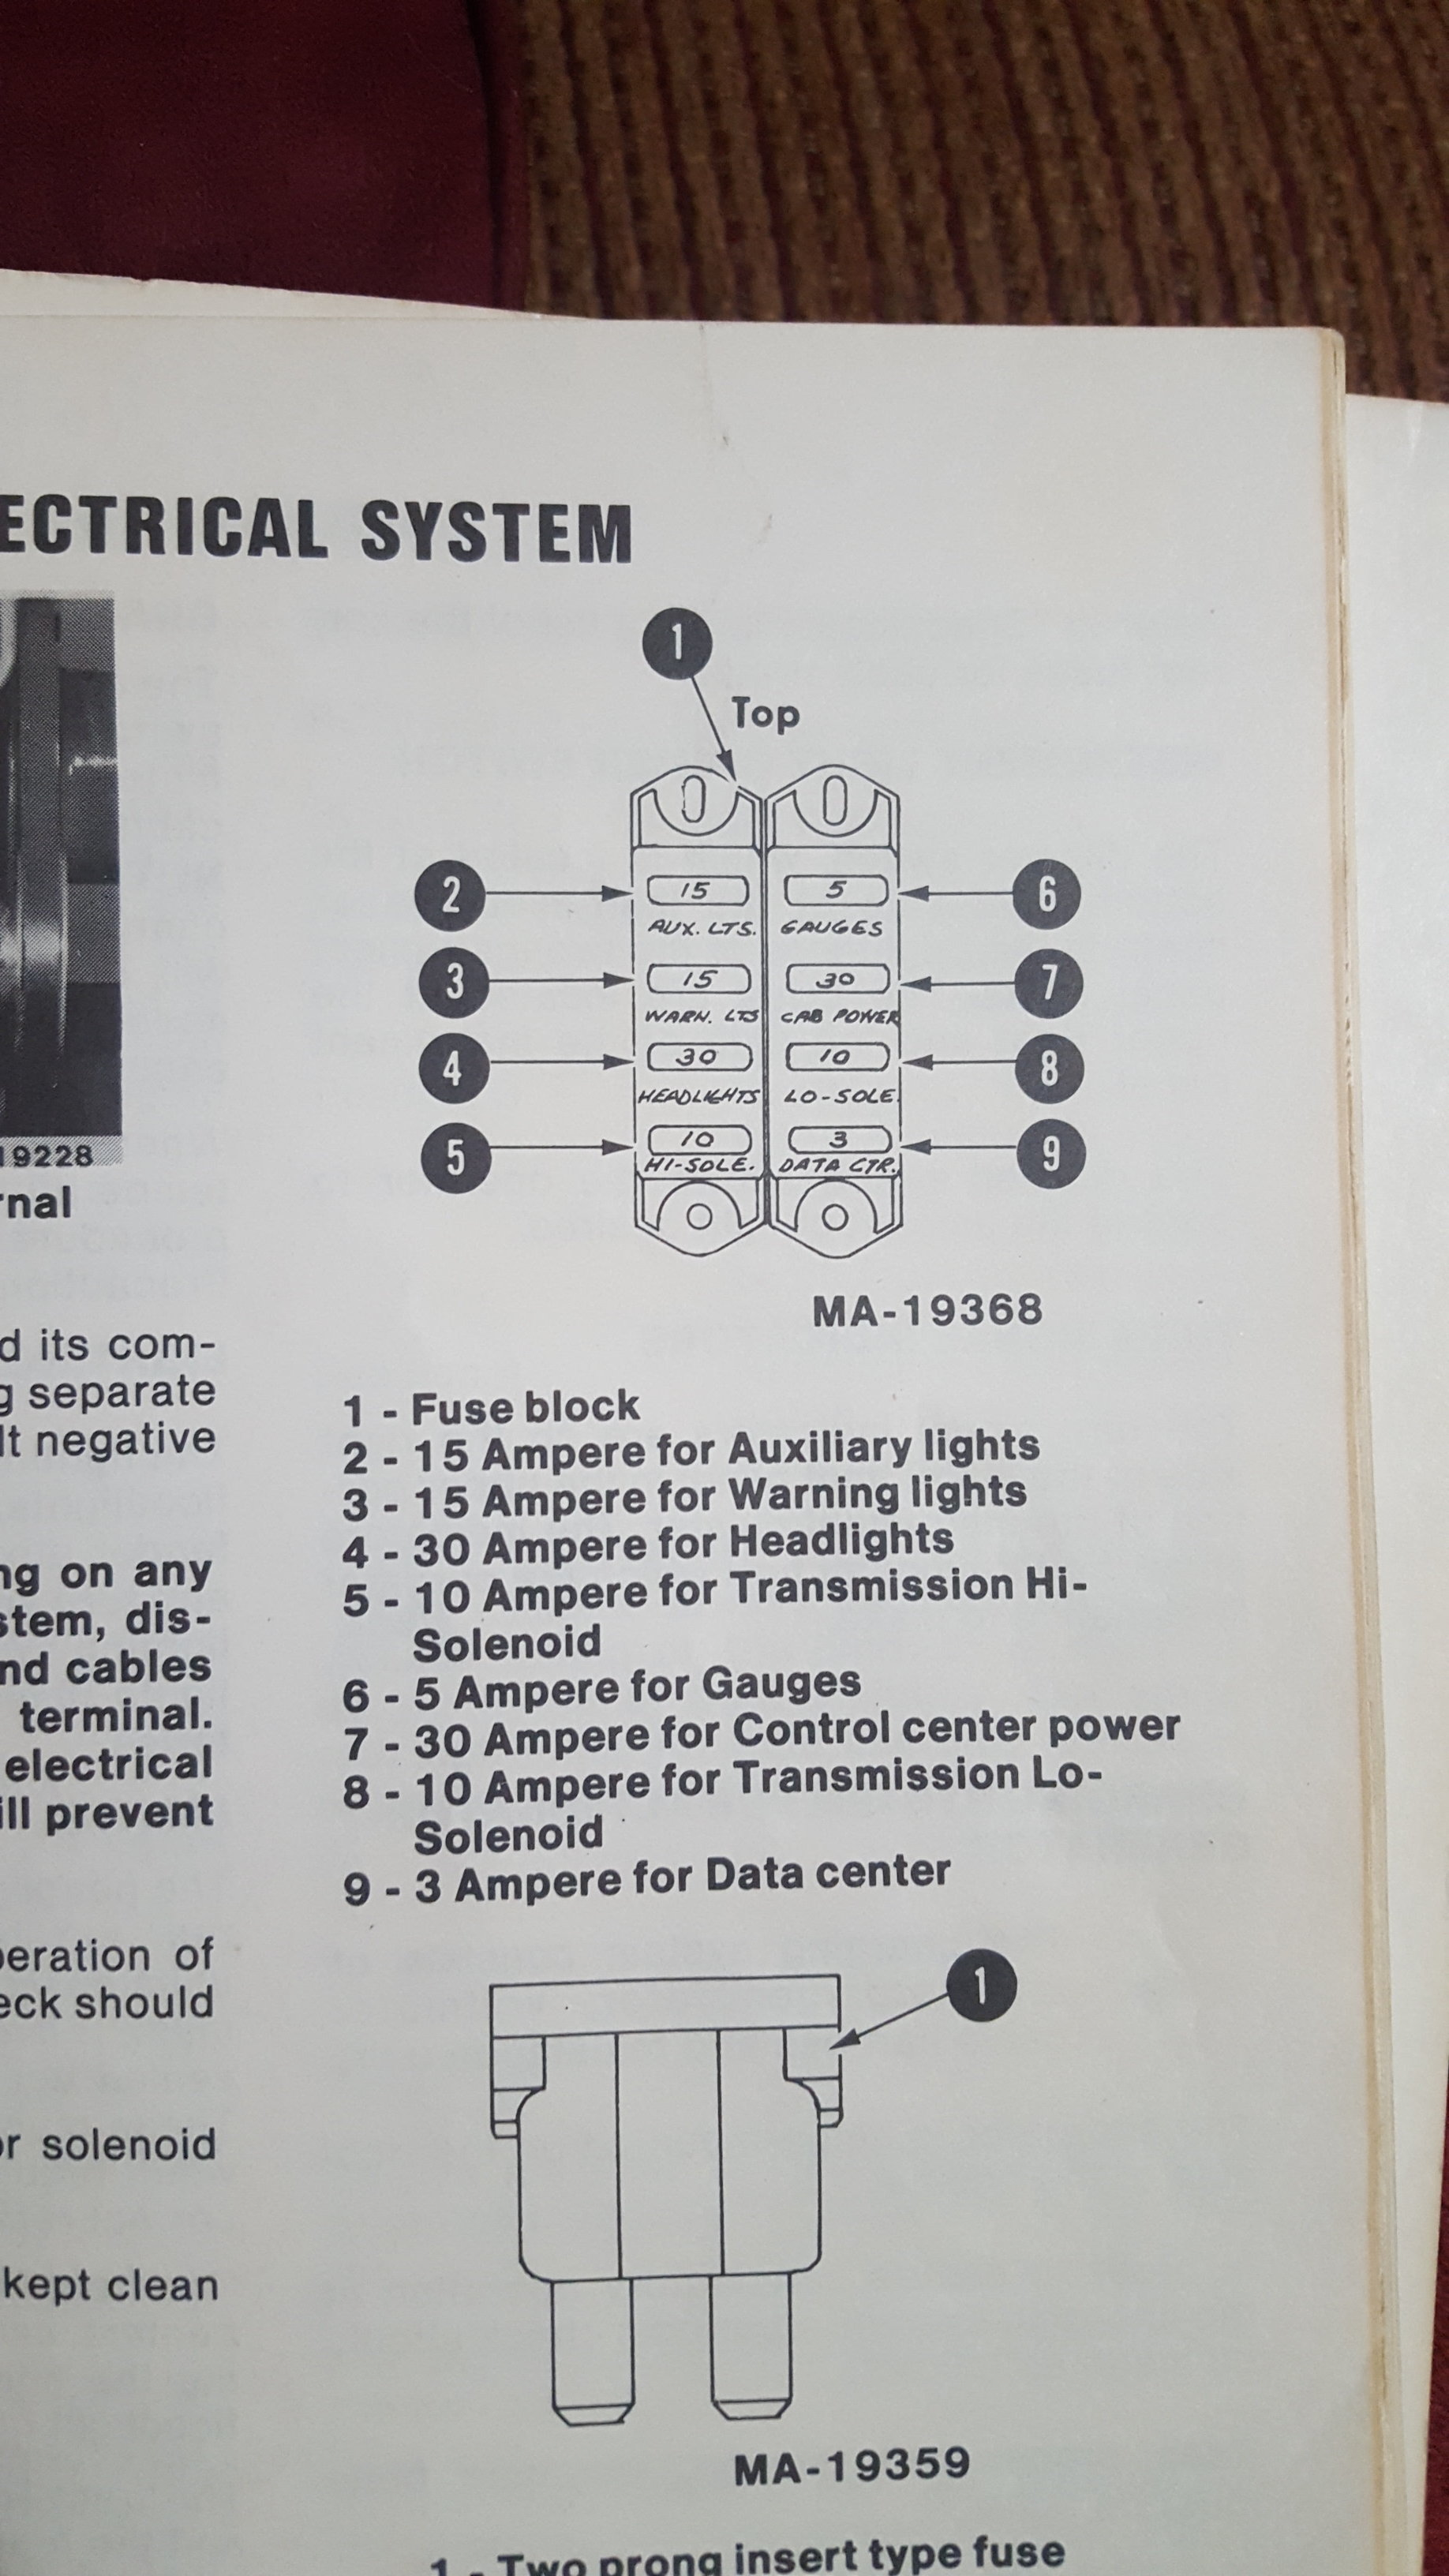 farmall 460 light wiring diagram 3688 fuse diagrahm general ih red power magazine community  3688 fuse diagrahm general ih red